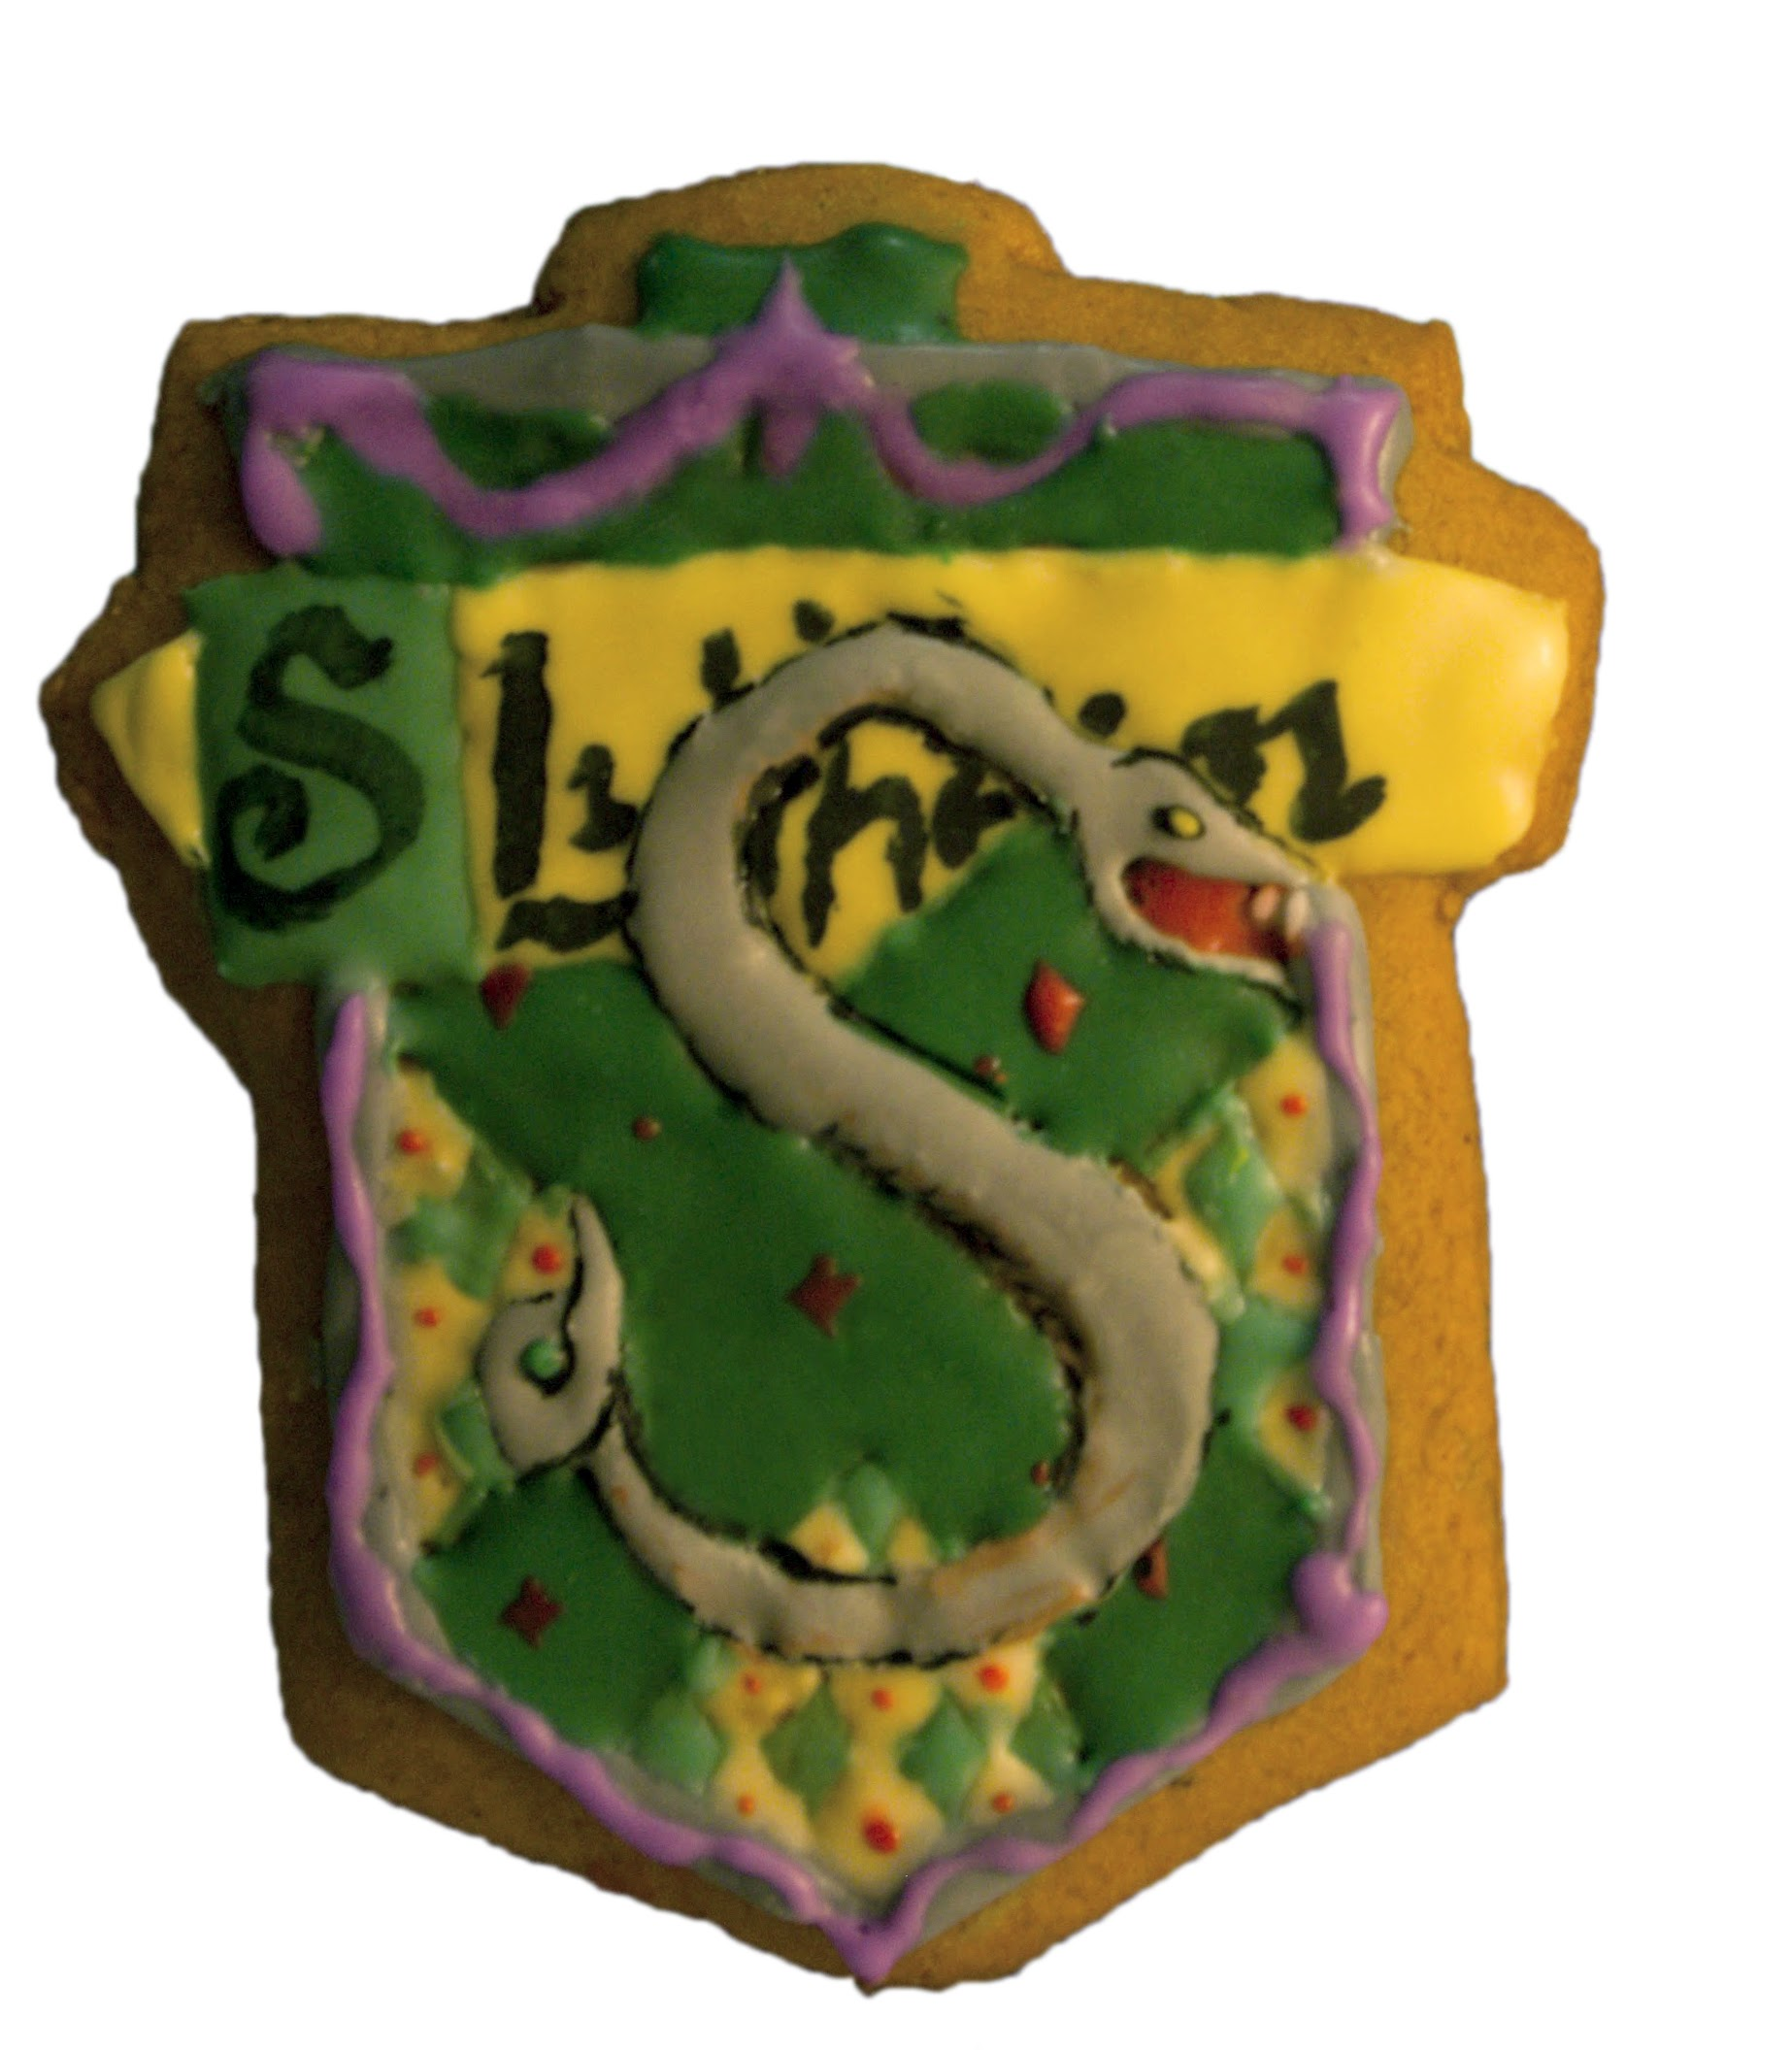 Slytherin house gingerbread cookie with hand-painted royal icing